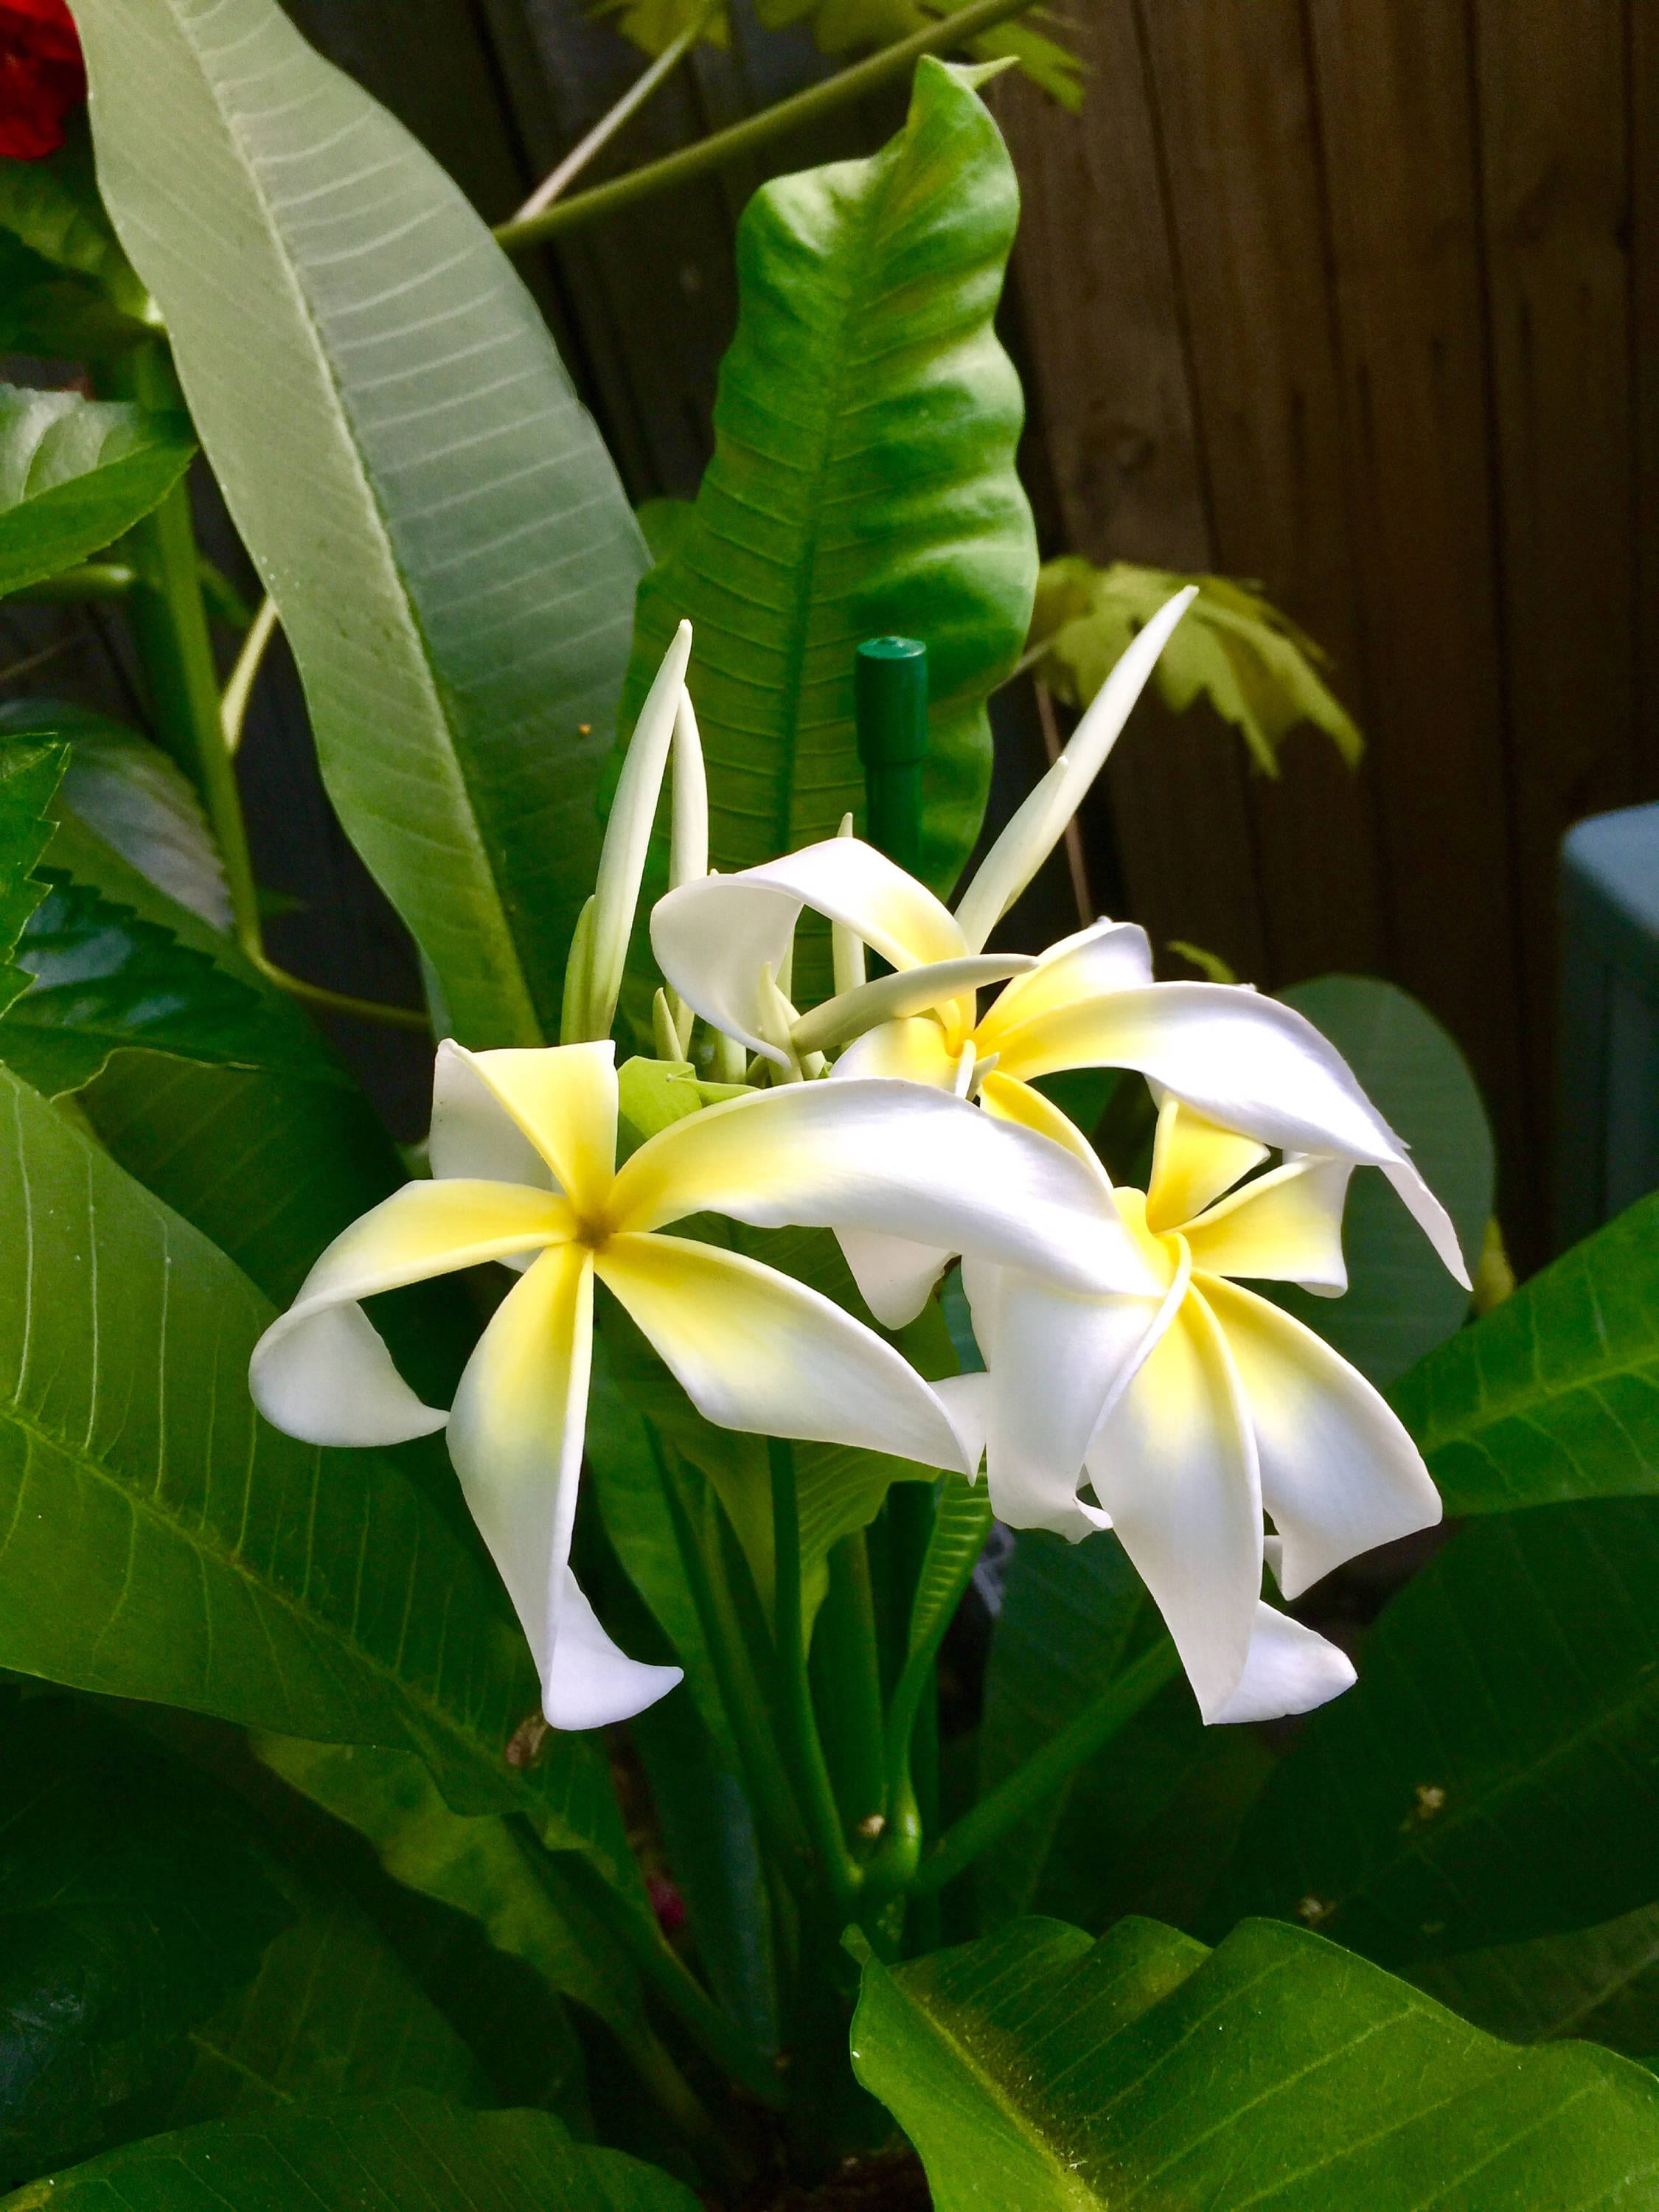 Beautiful plant plumeria frangipani yellow flowers seedling beautiful plant plumeria frangipani yellow flowers seedling hawaiian plumeria flower stenopatala a perfect gift izmirmasajfo